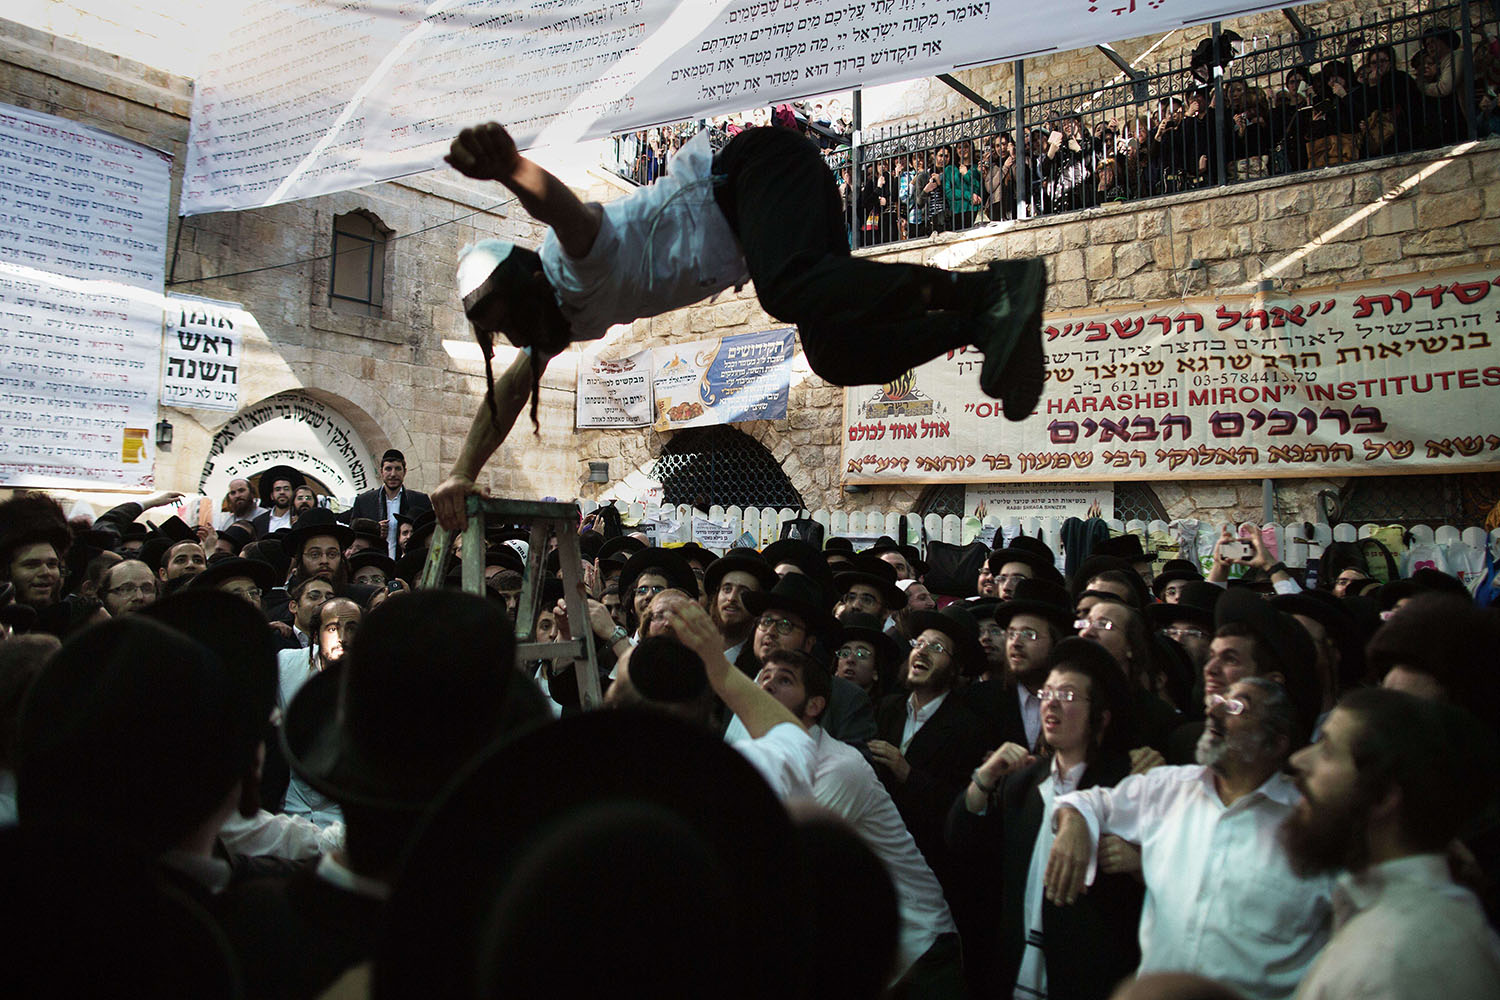 Ultra-Orthodox Jews dance at the grave site of Rabbi Shimon Bar Yochai in the northern Israeli village of Meron on May 18, 2014, at the start of the day-long holiday of Lag Baomer that commemorates the Jewish scholar's death.